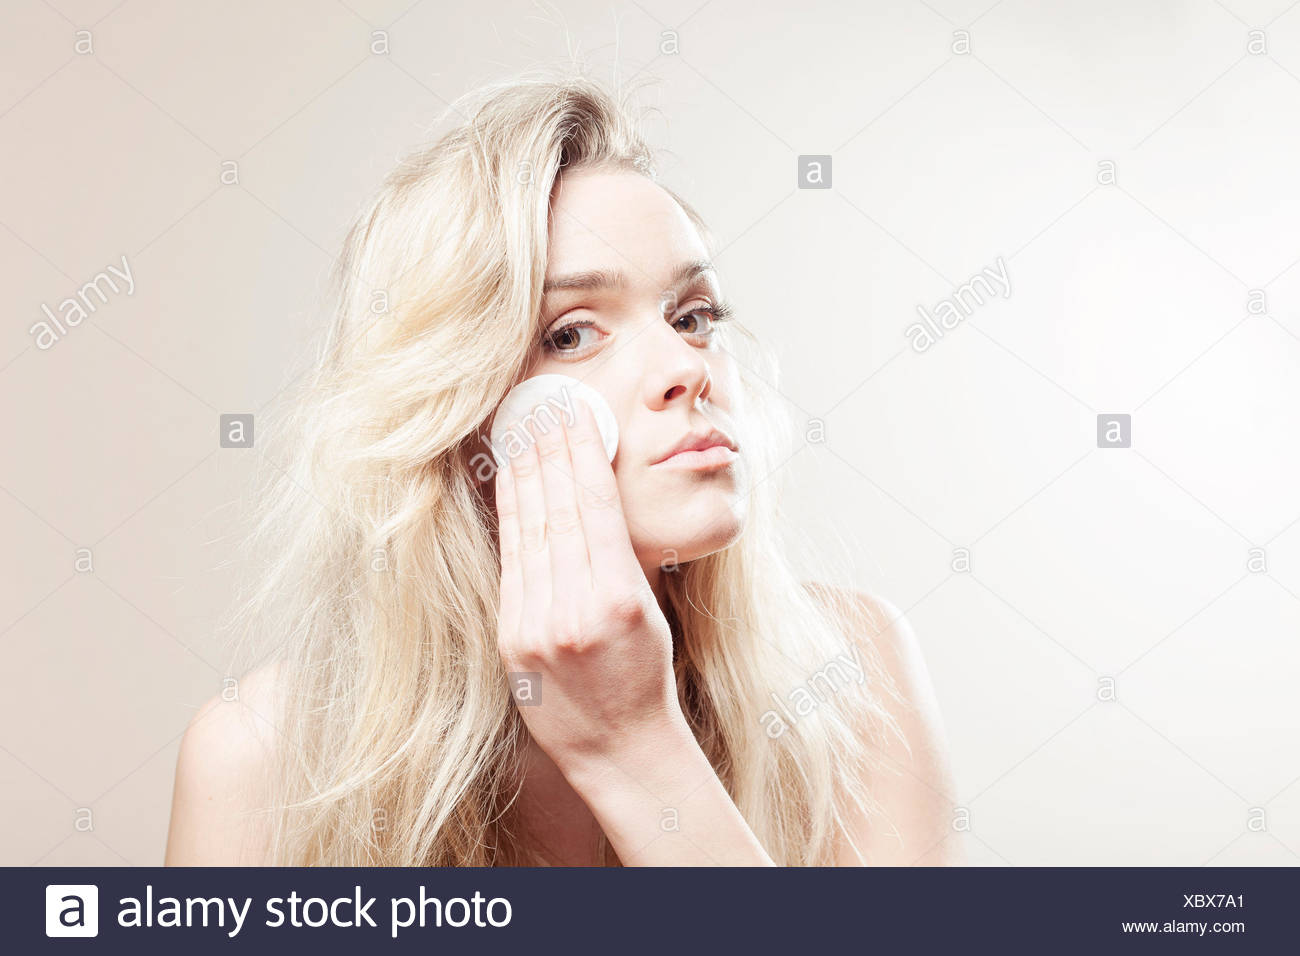 Young woman cleaning her face - Stock Image